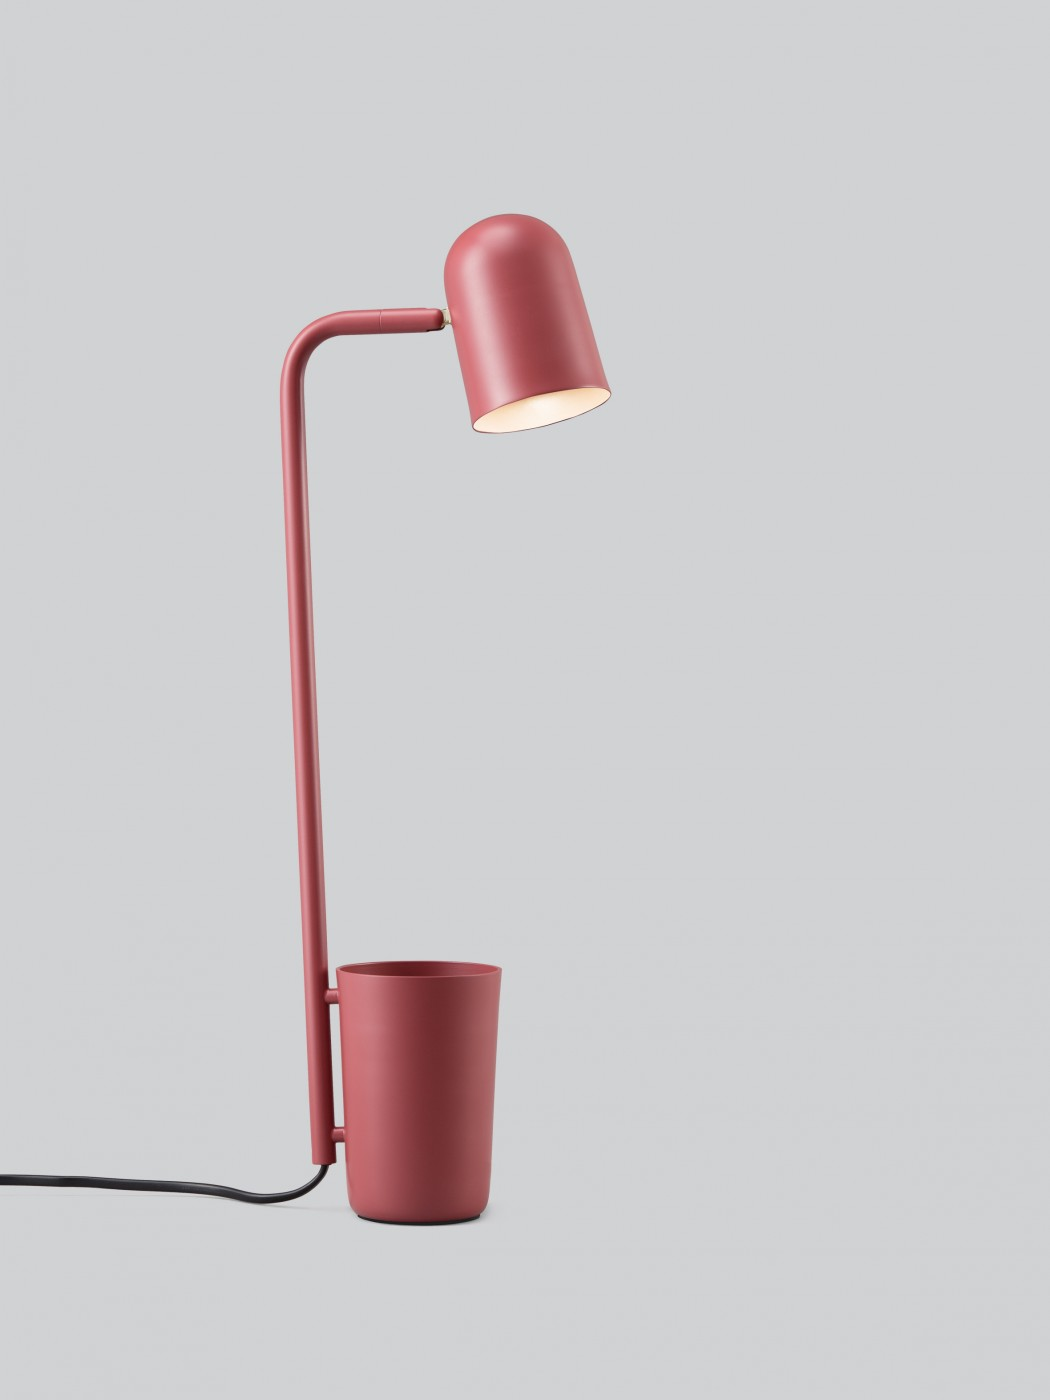 lampe-de-table-design-buddy-northern_lighting-rouge-marsala